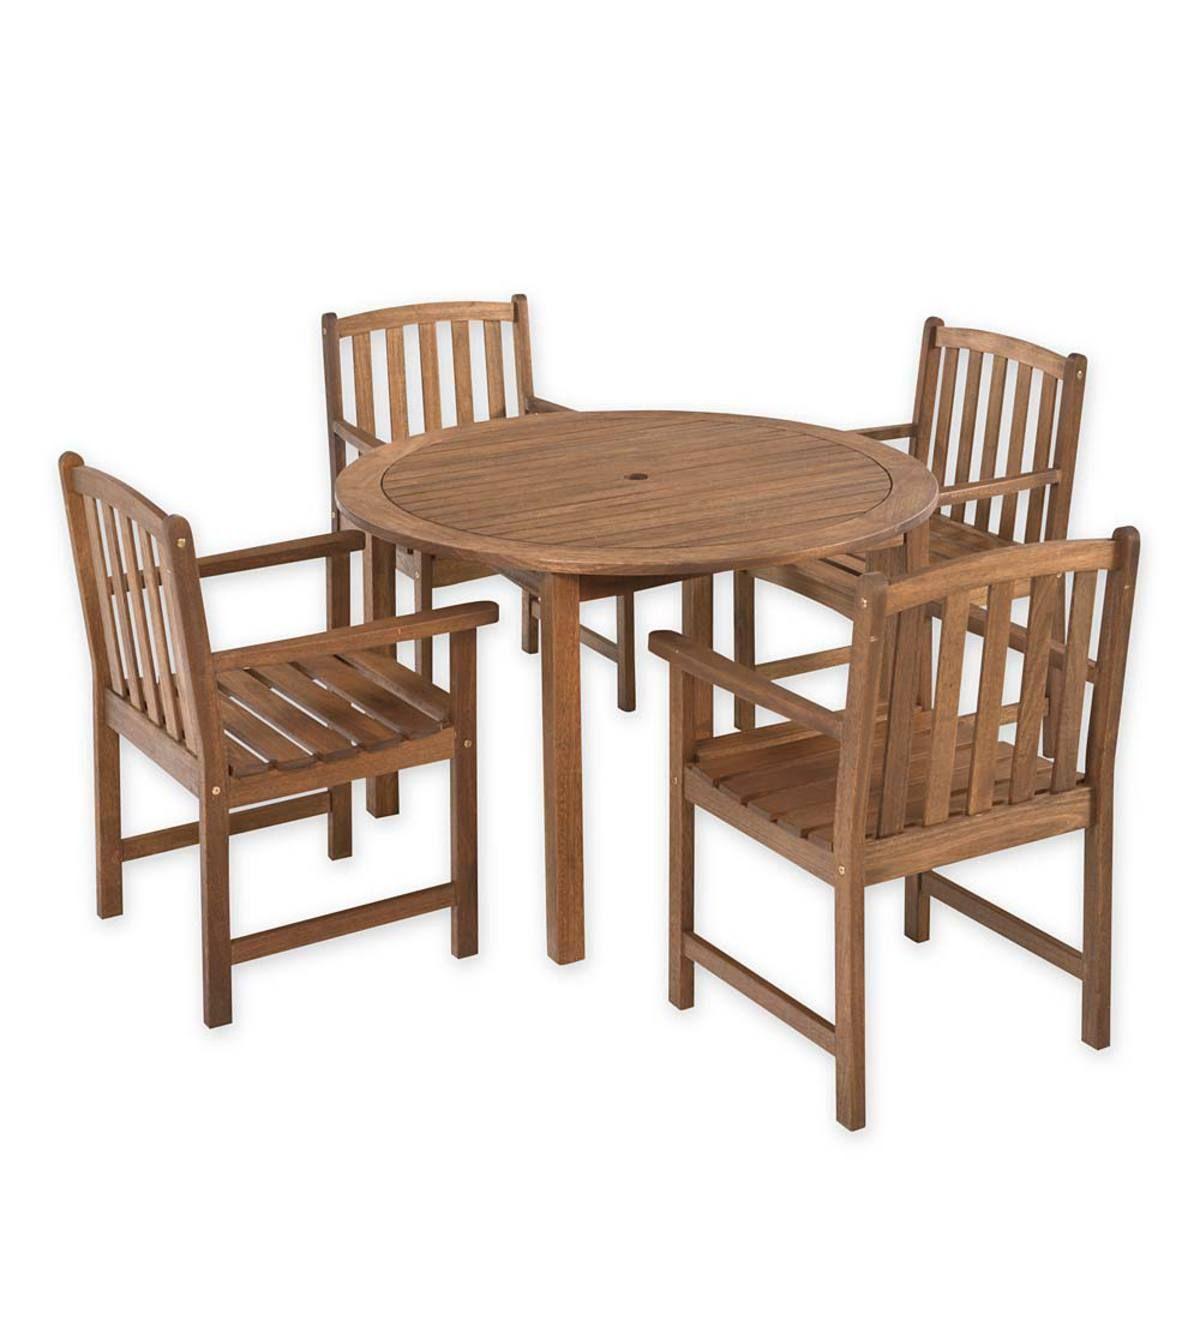 Lancaster Round Table Set Round Table And 4 Chairs Wooden